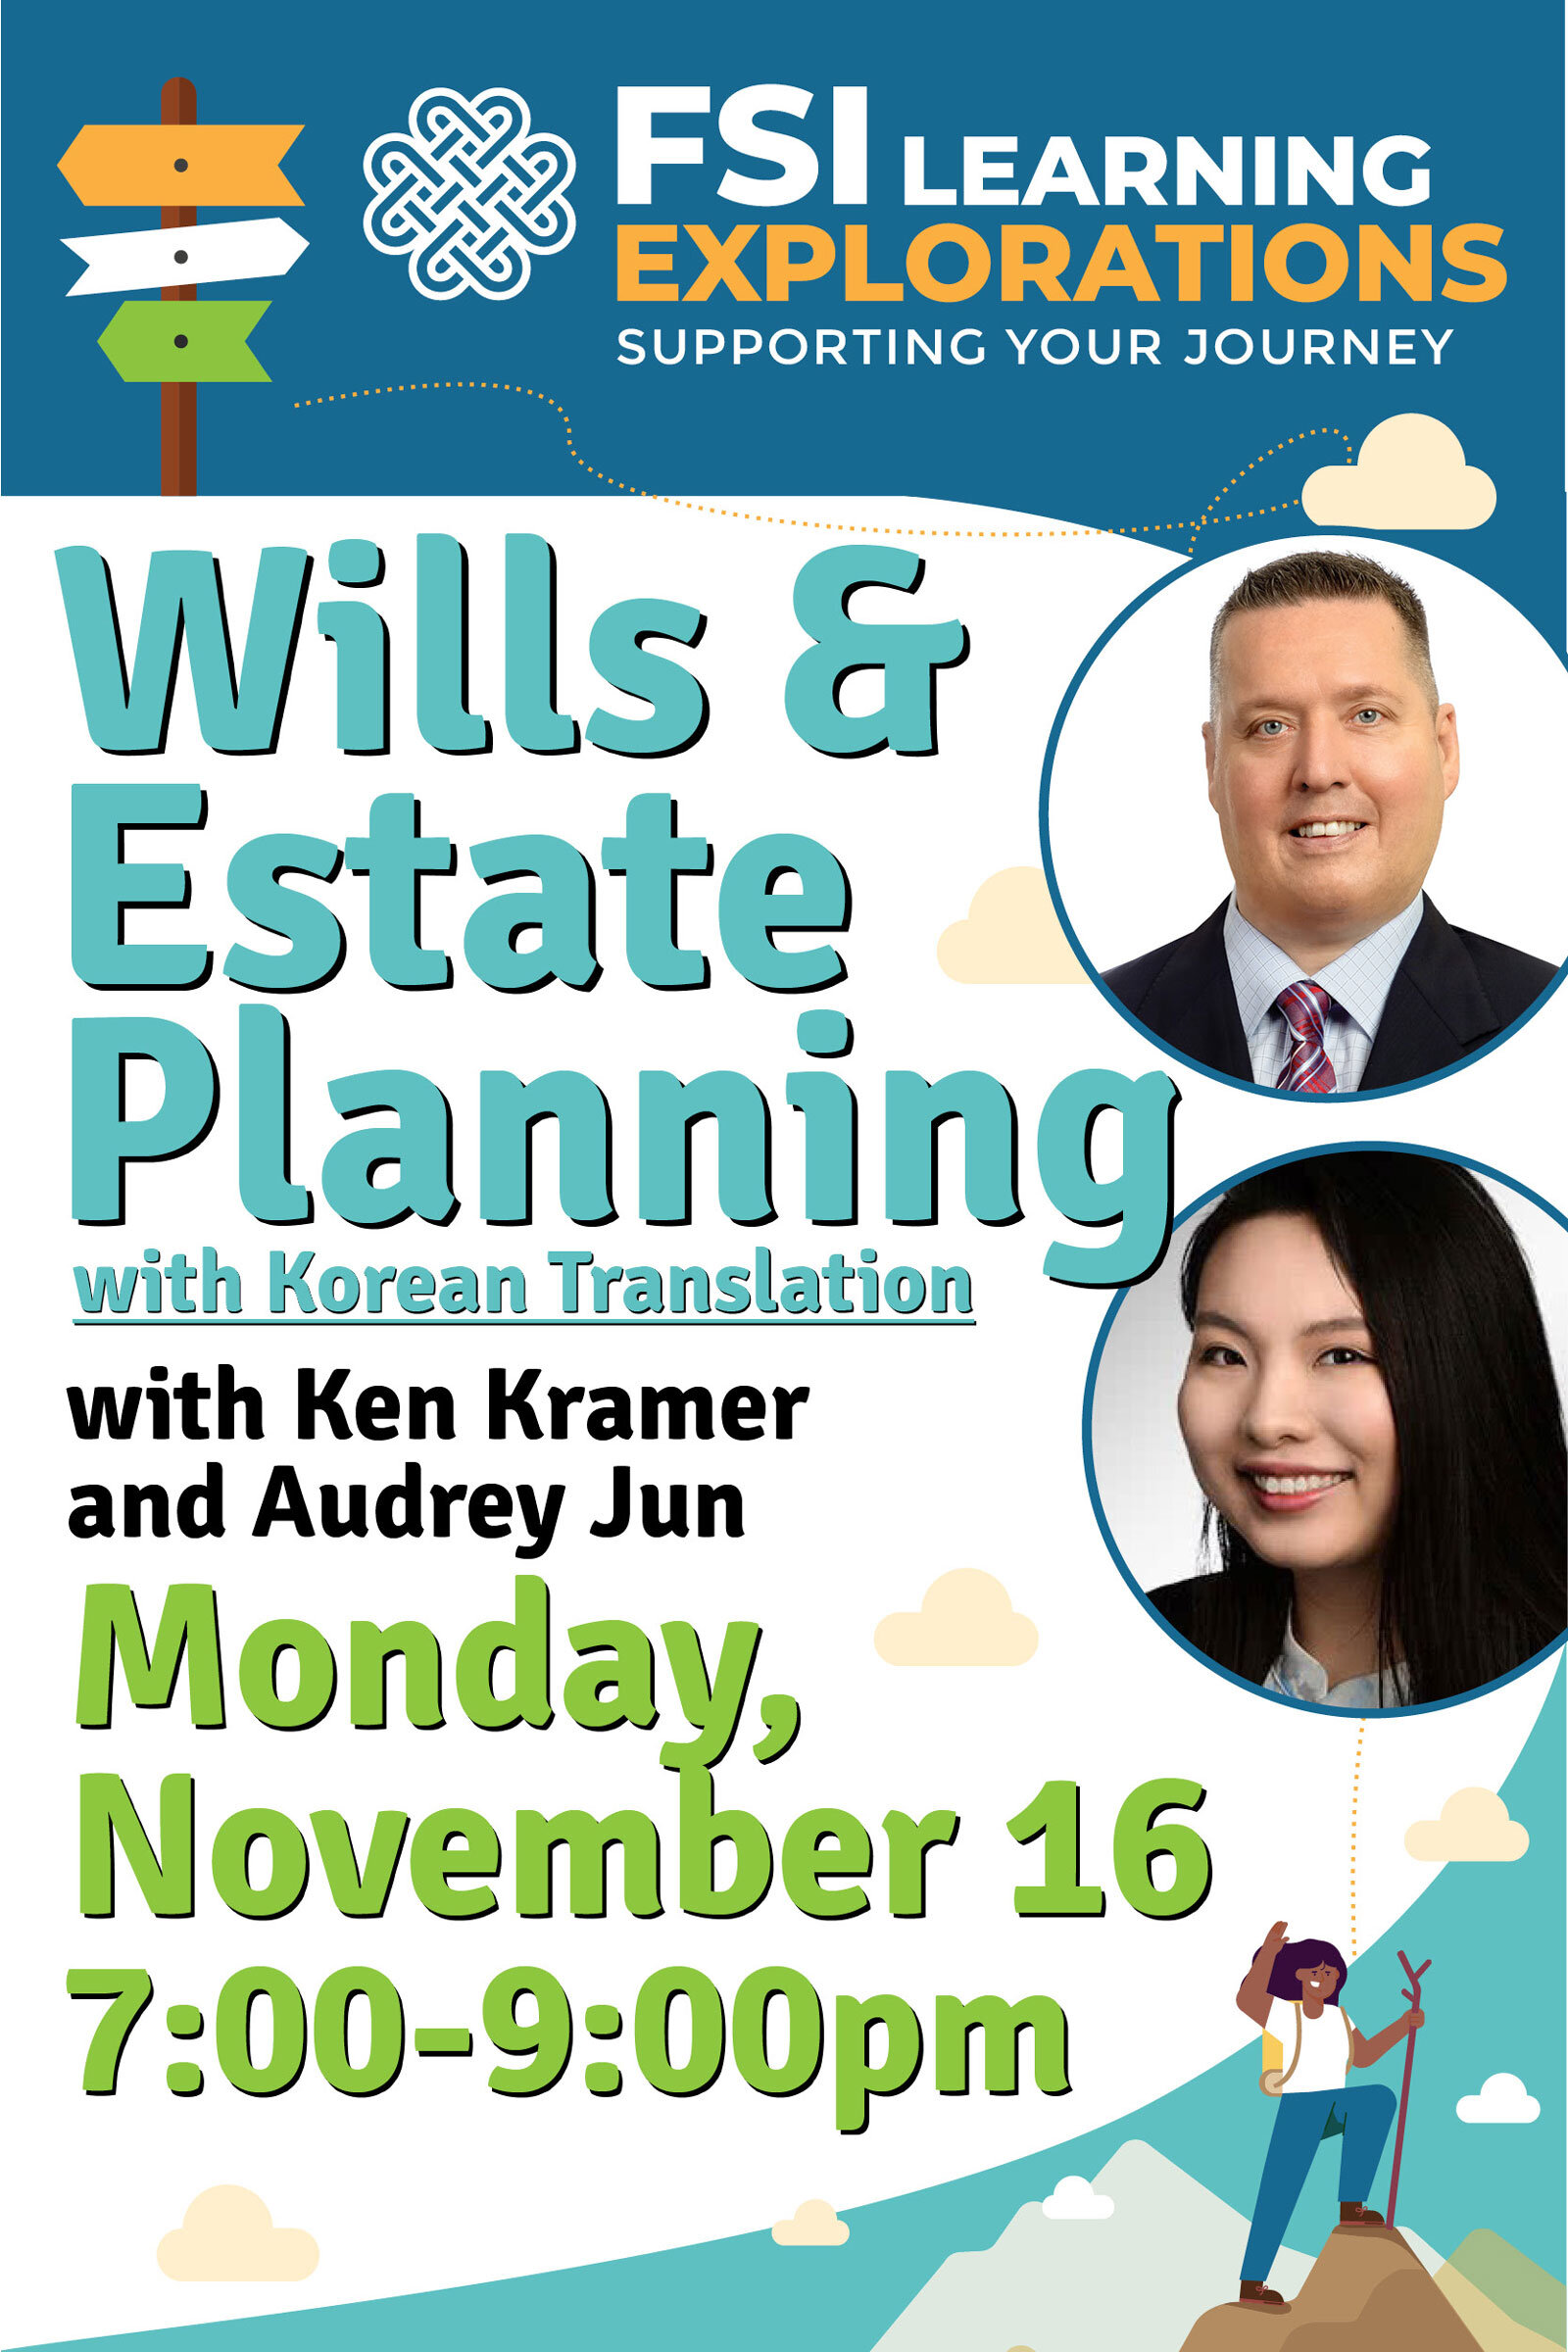 FSI Learning Explorations - Wills and Estates Planning with Korean Translation